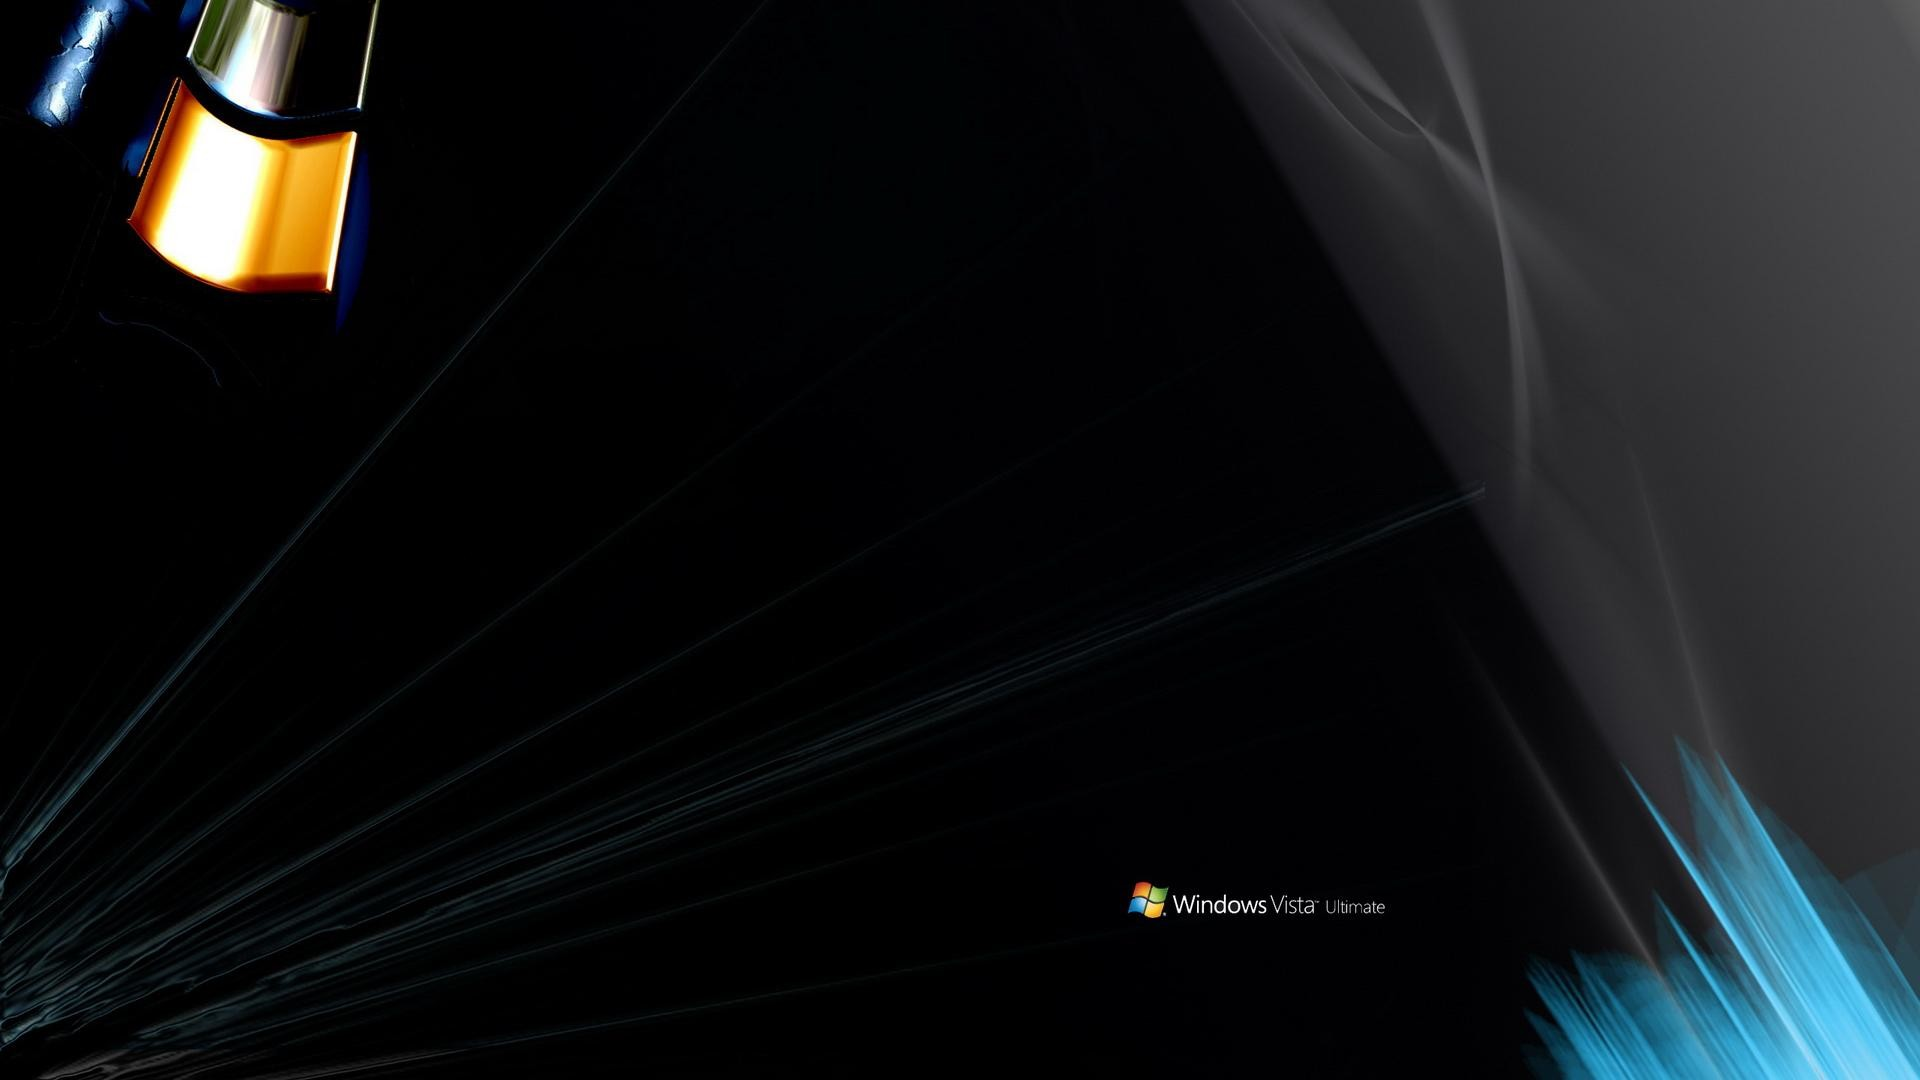 1920x1080  Windows vista ultimate desktop backgrounds wide wallpapers: 1280x800,1440x900,1680x1050 - hd